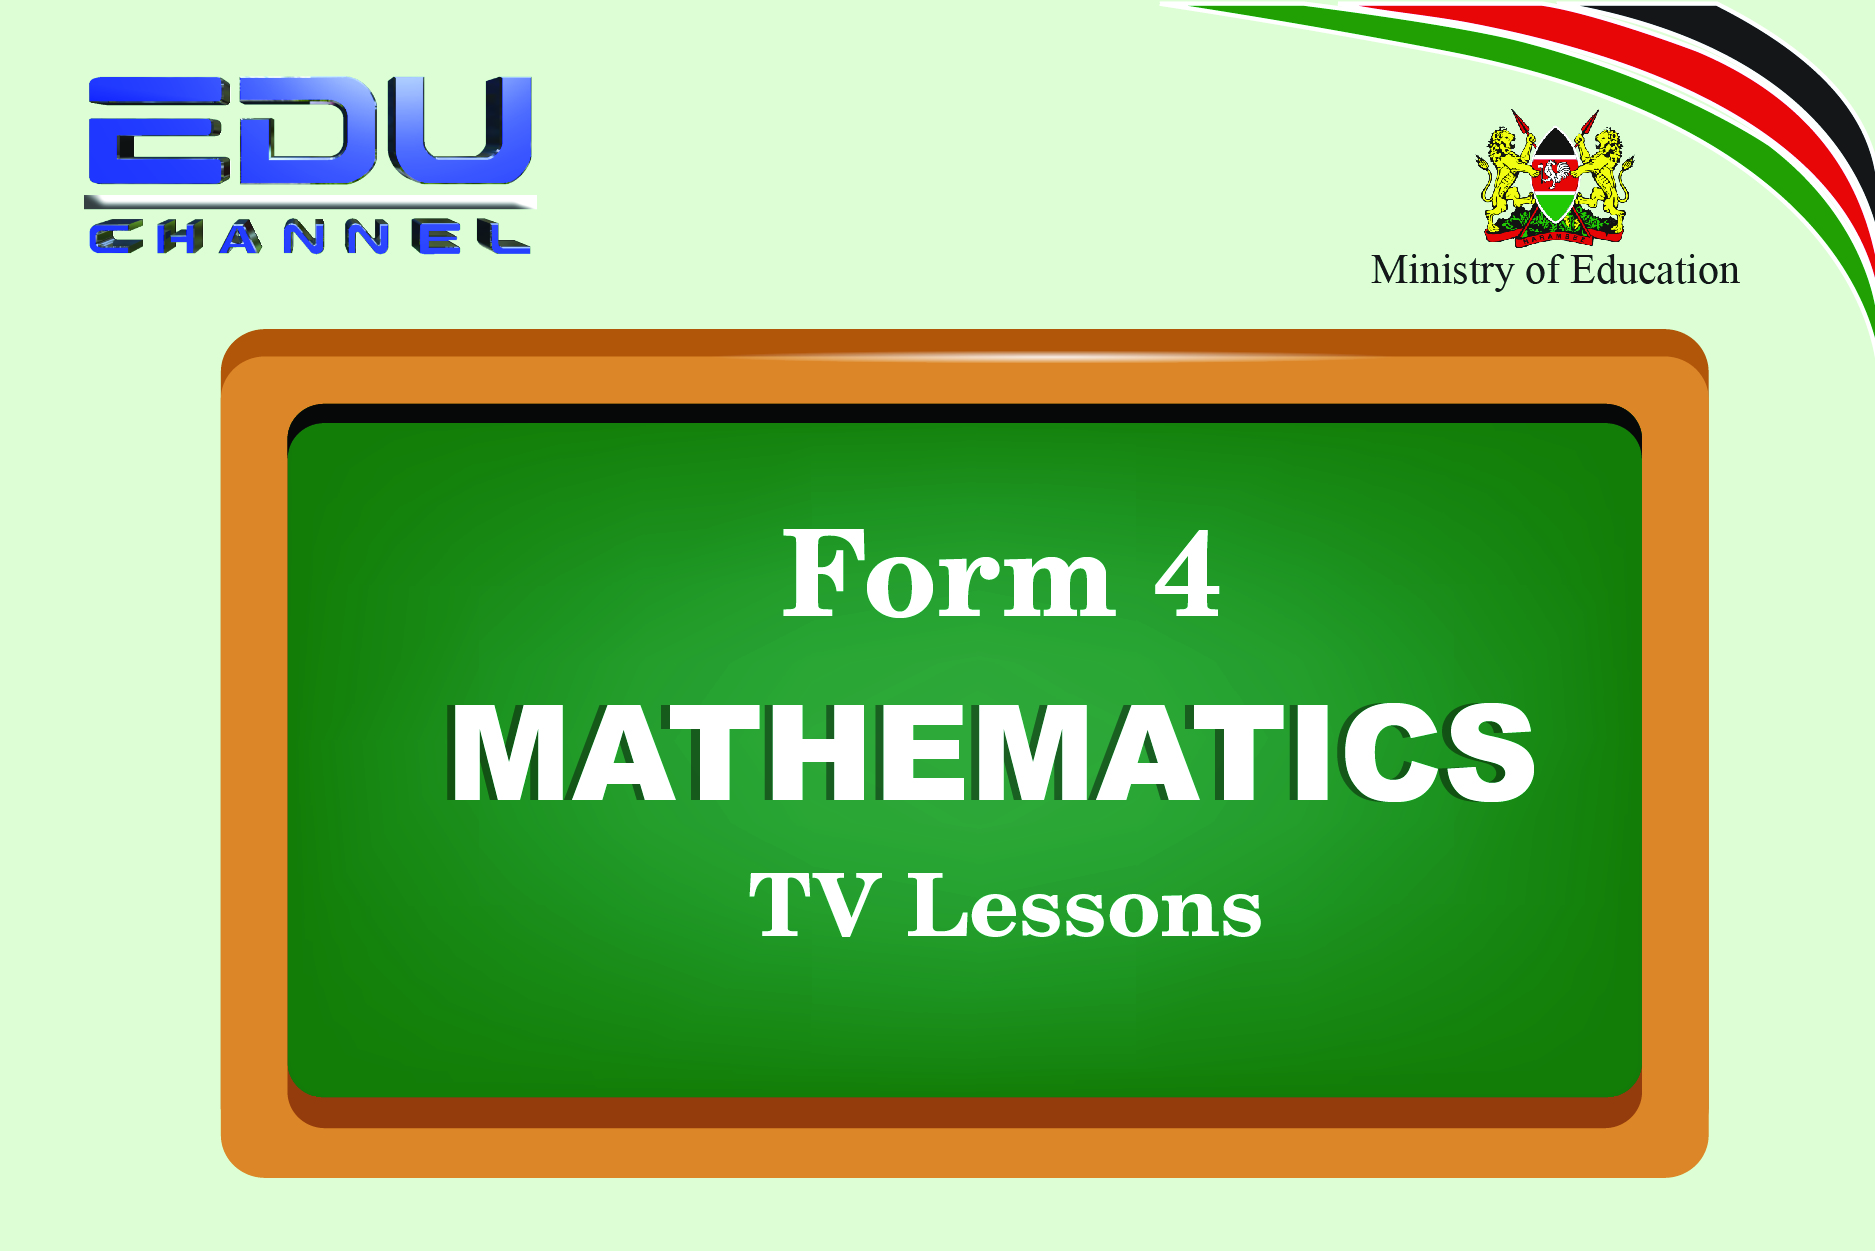 Form 4 Mathematics Lesson 6:Three dimensional geometry - angle between two plants